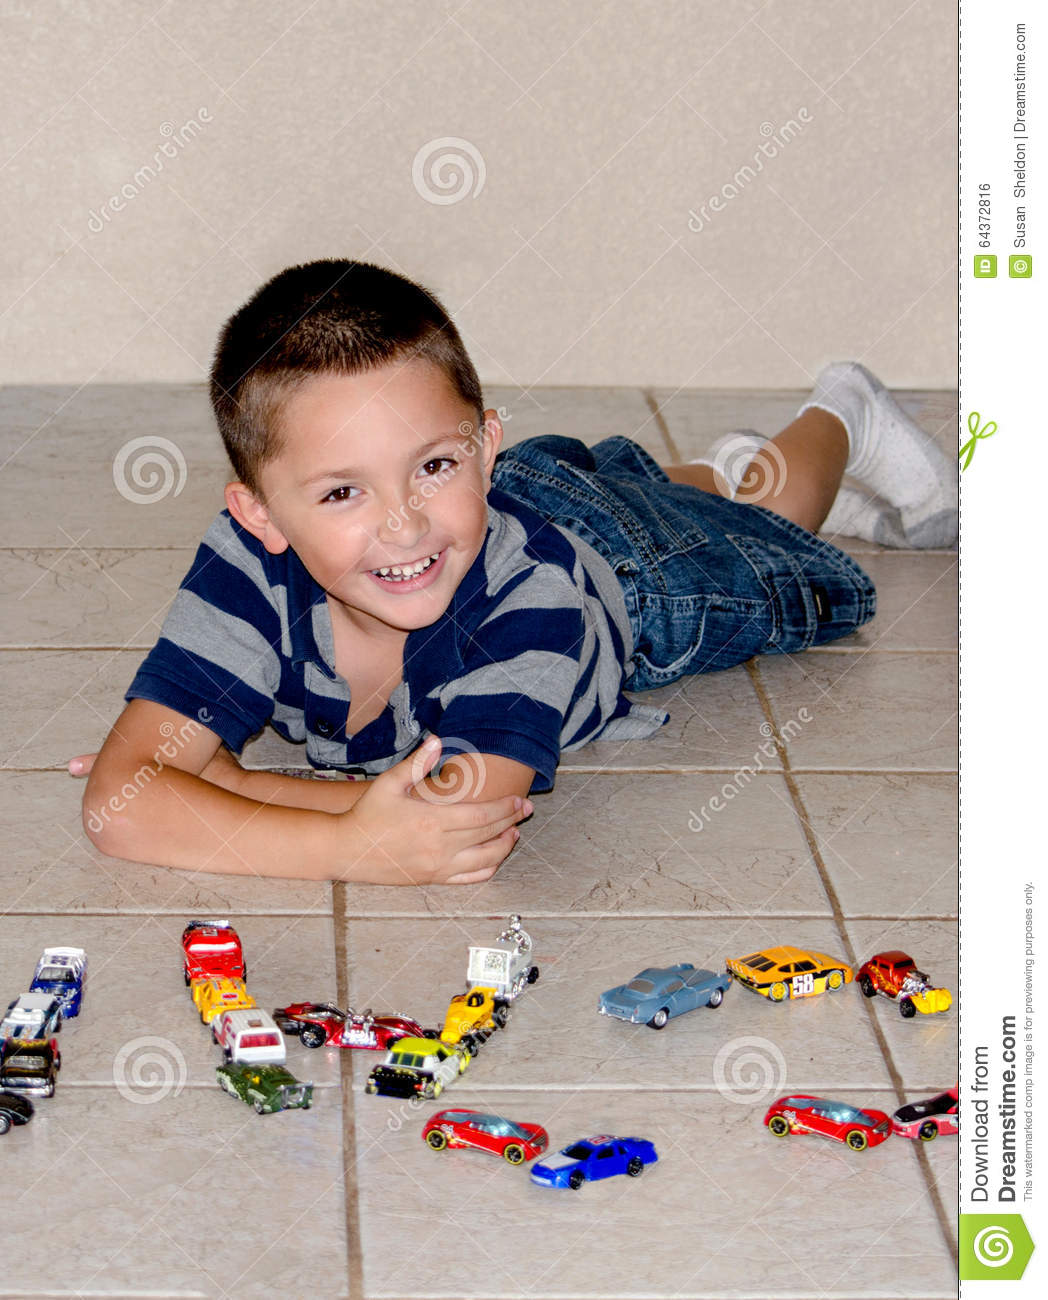 Happy Boy And Toy Cars Stock Photo Image Of Hispanic 64372816